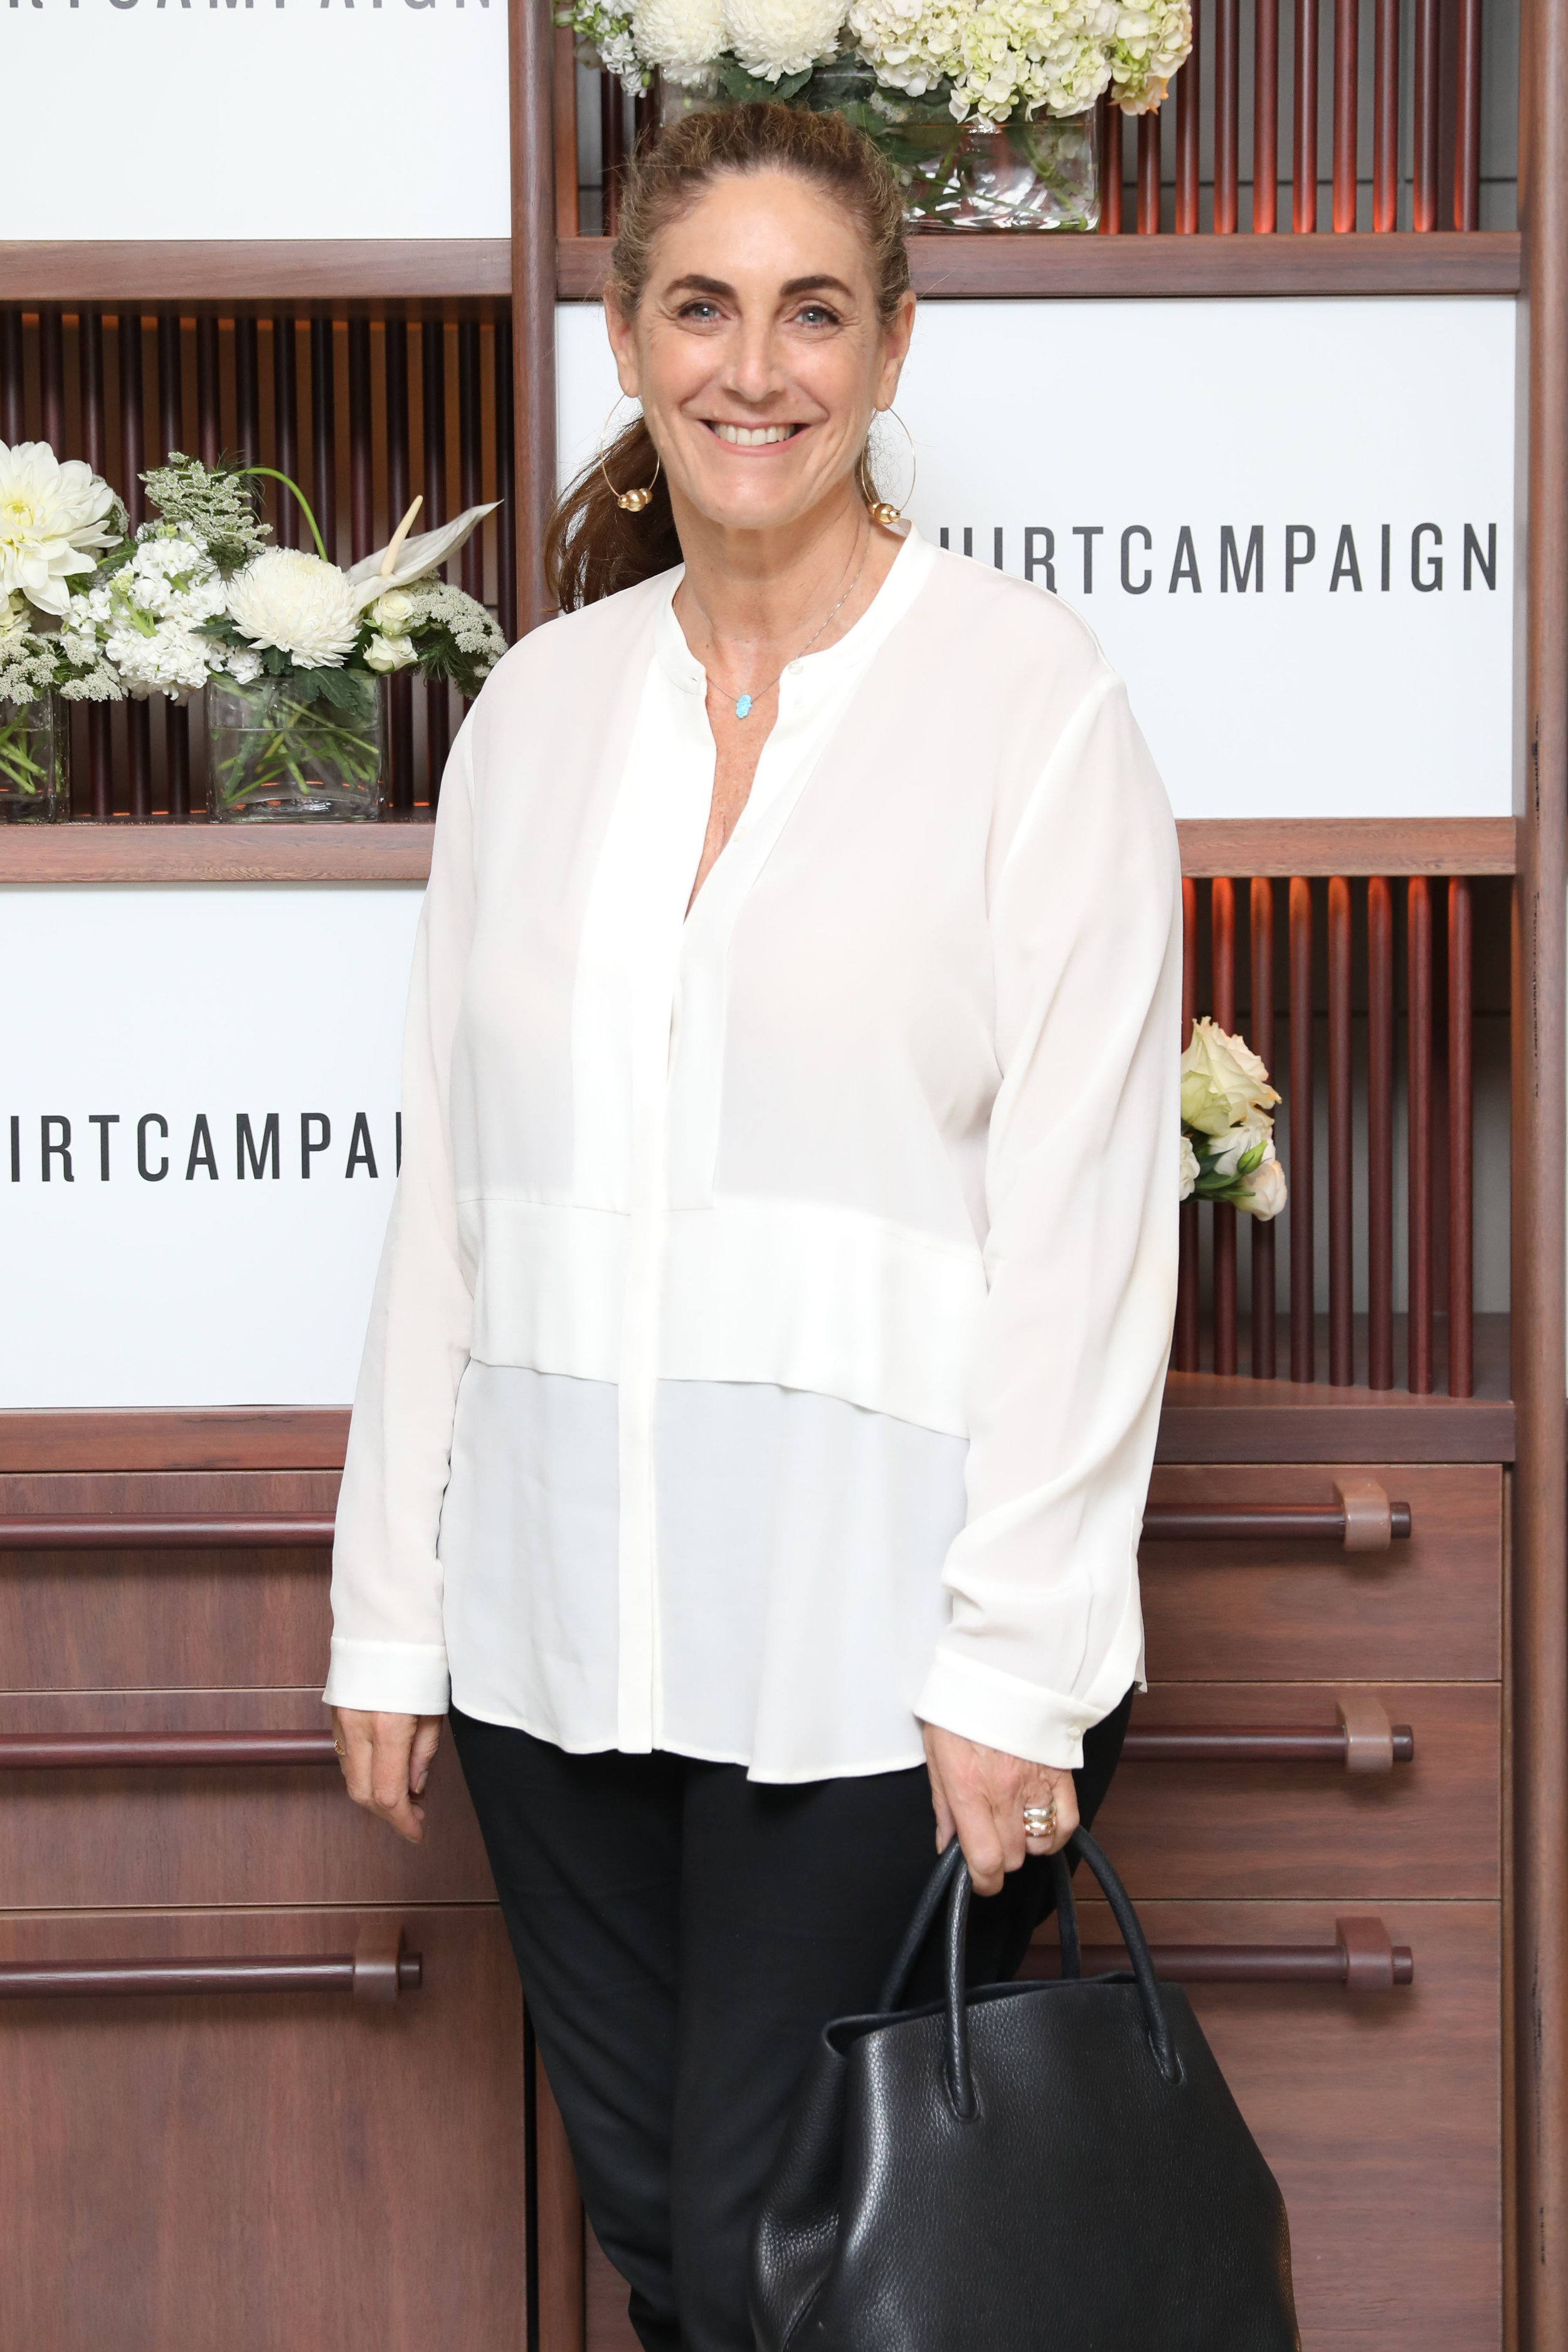 kate-and-co-projects-witchery-ocrf-white-shirt-campaign-2018-jackie-frank.jpg